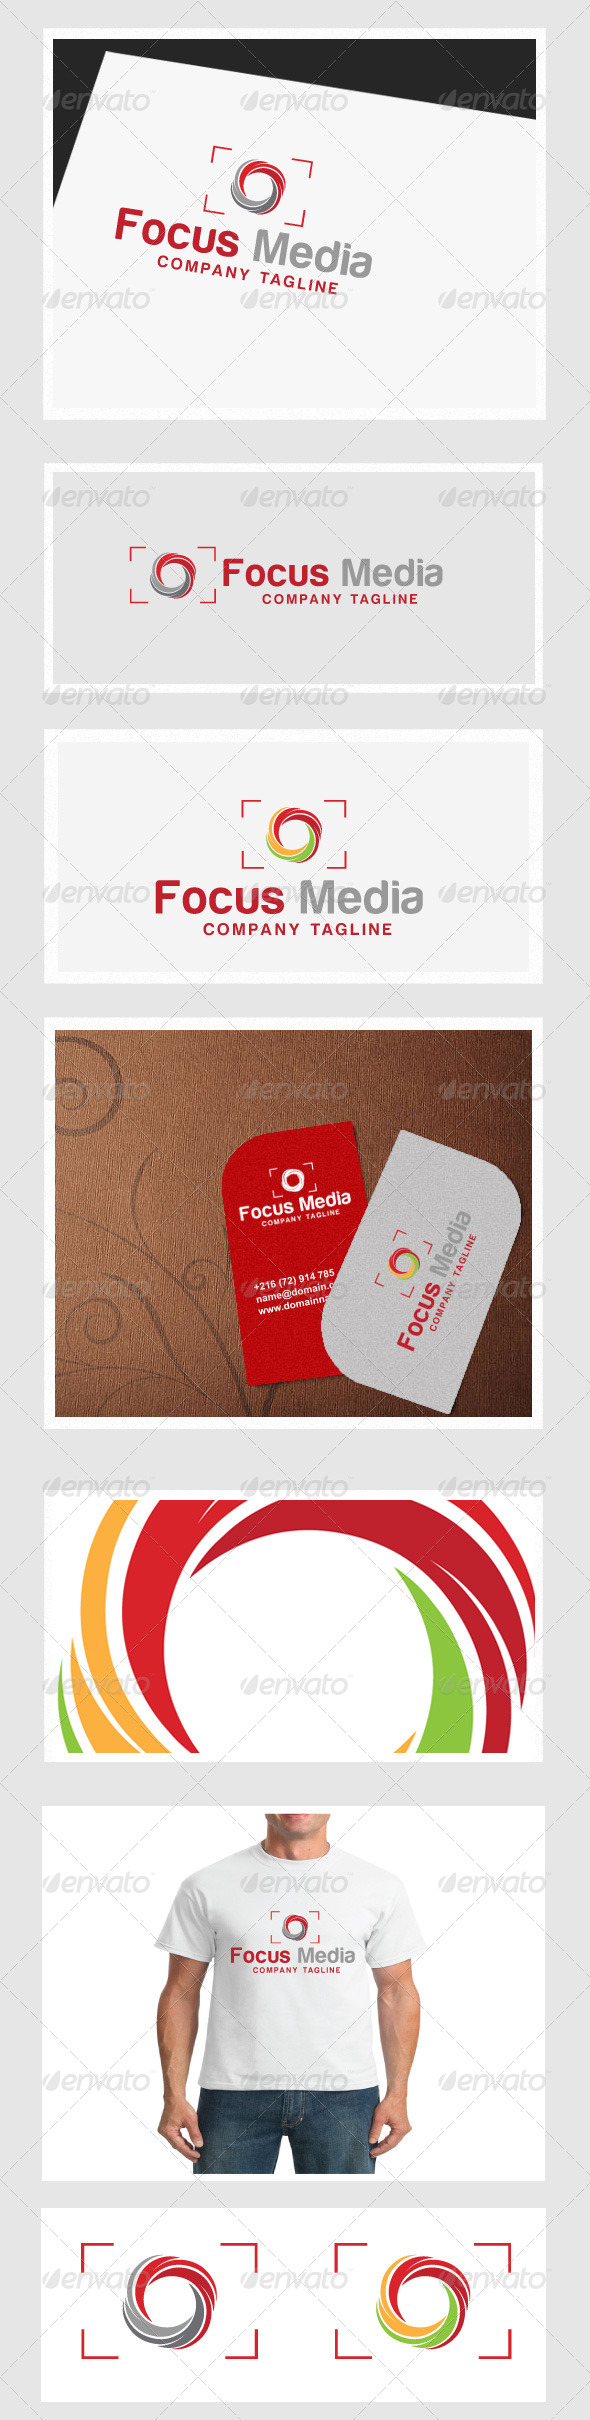 GraphicRiver Focus Media 4355325